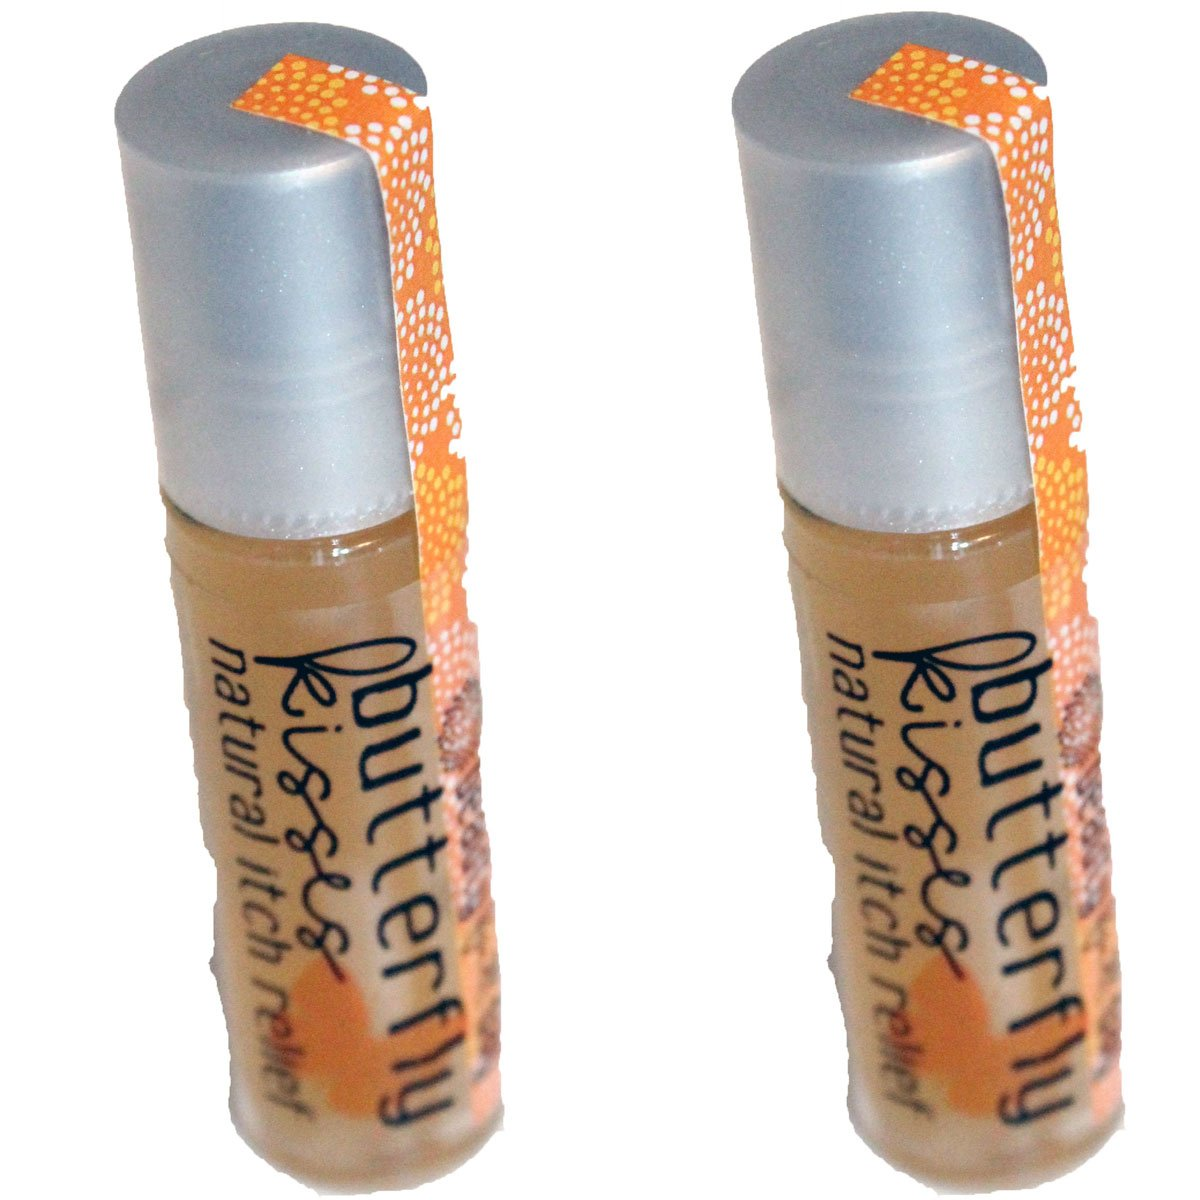 Set of 2 - Butterfly Kisses All-Natural Itch Relief Gel Rollers or Insect Bite Relief By Beauty Full Day